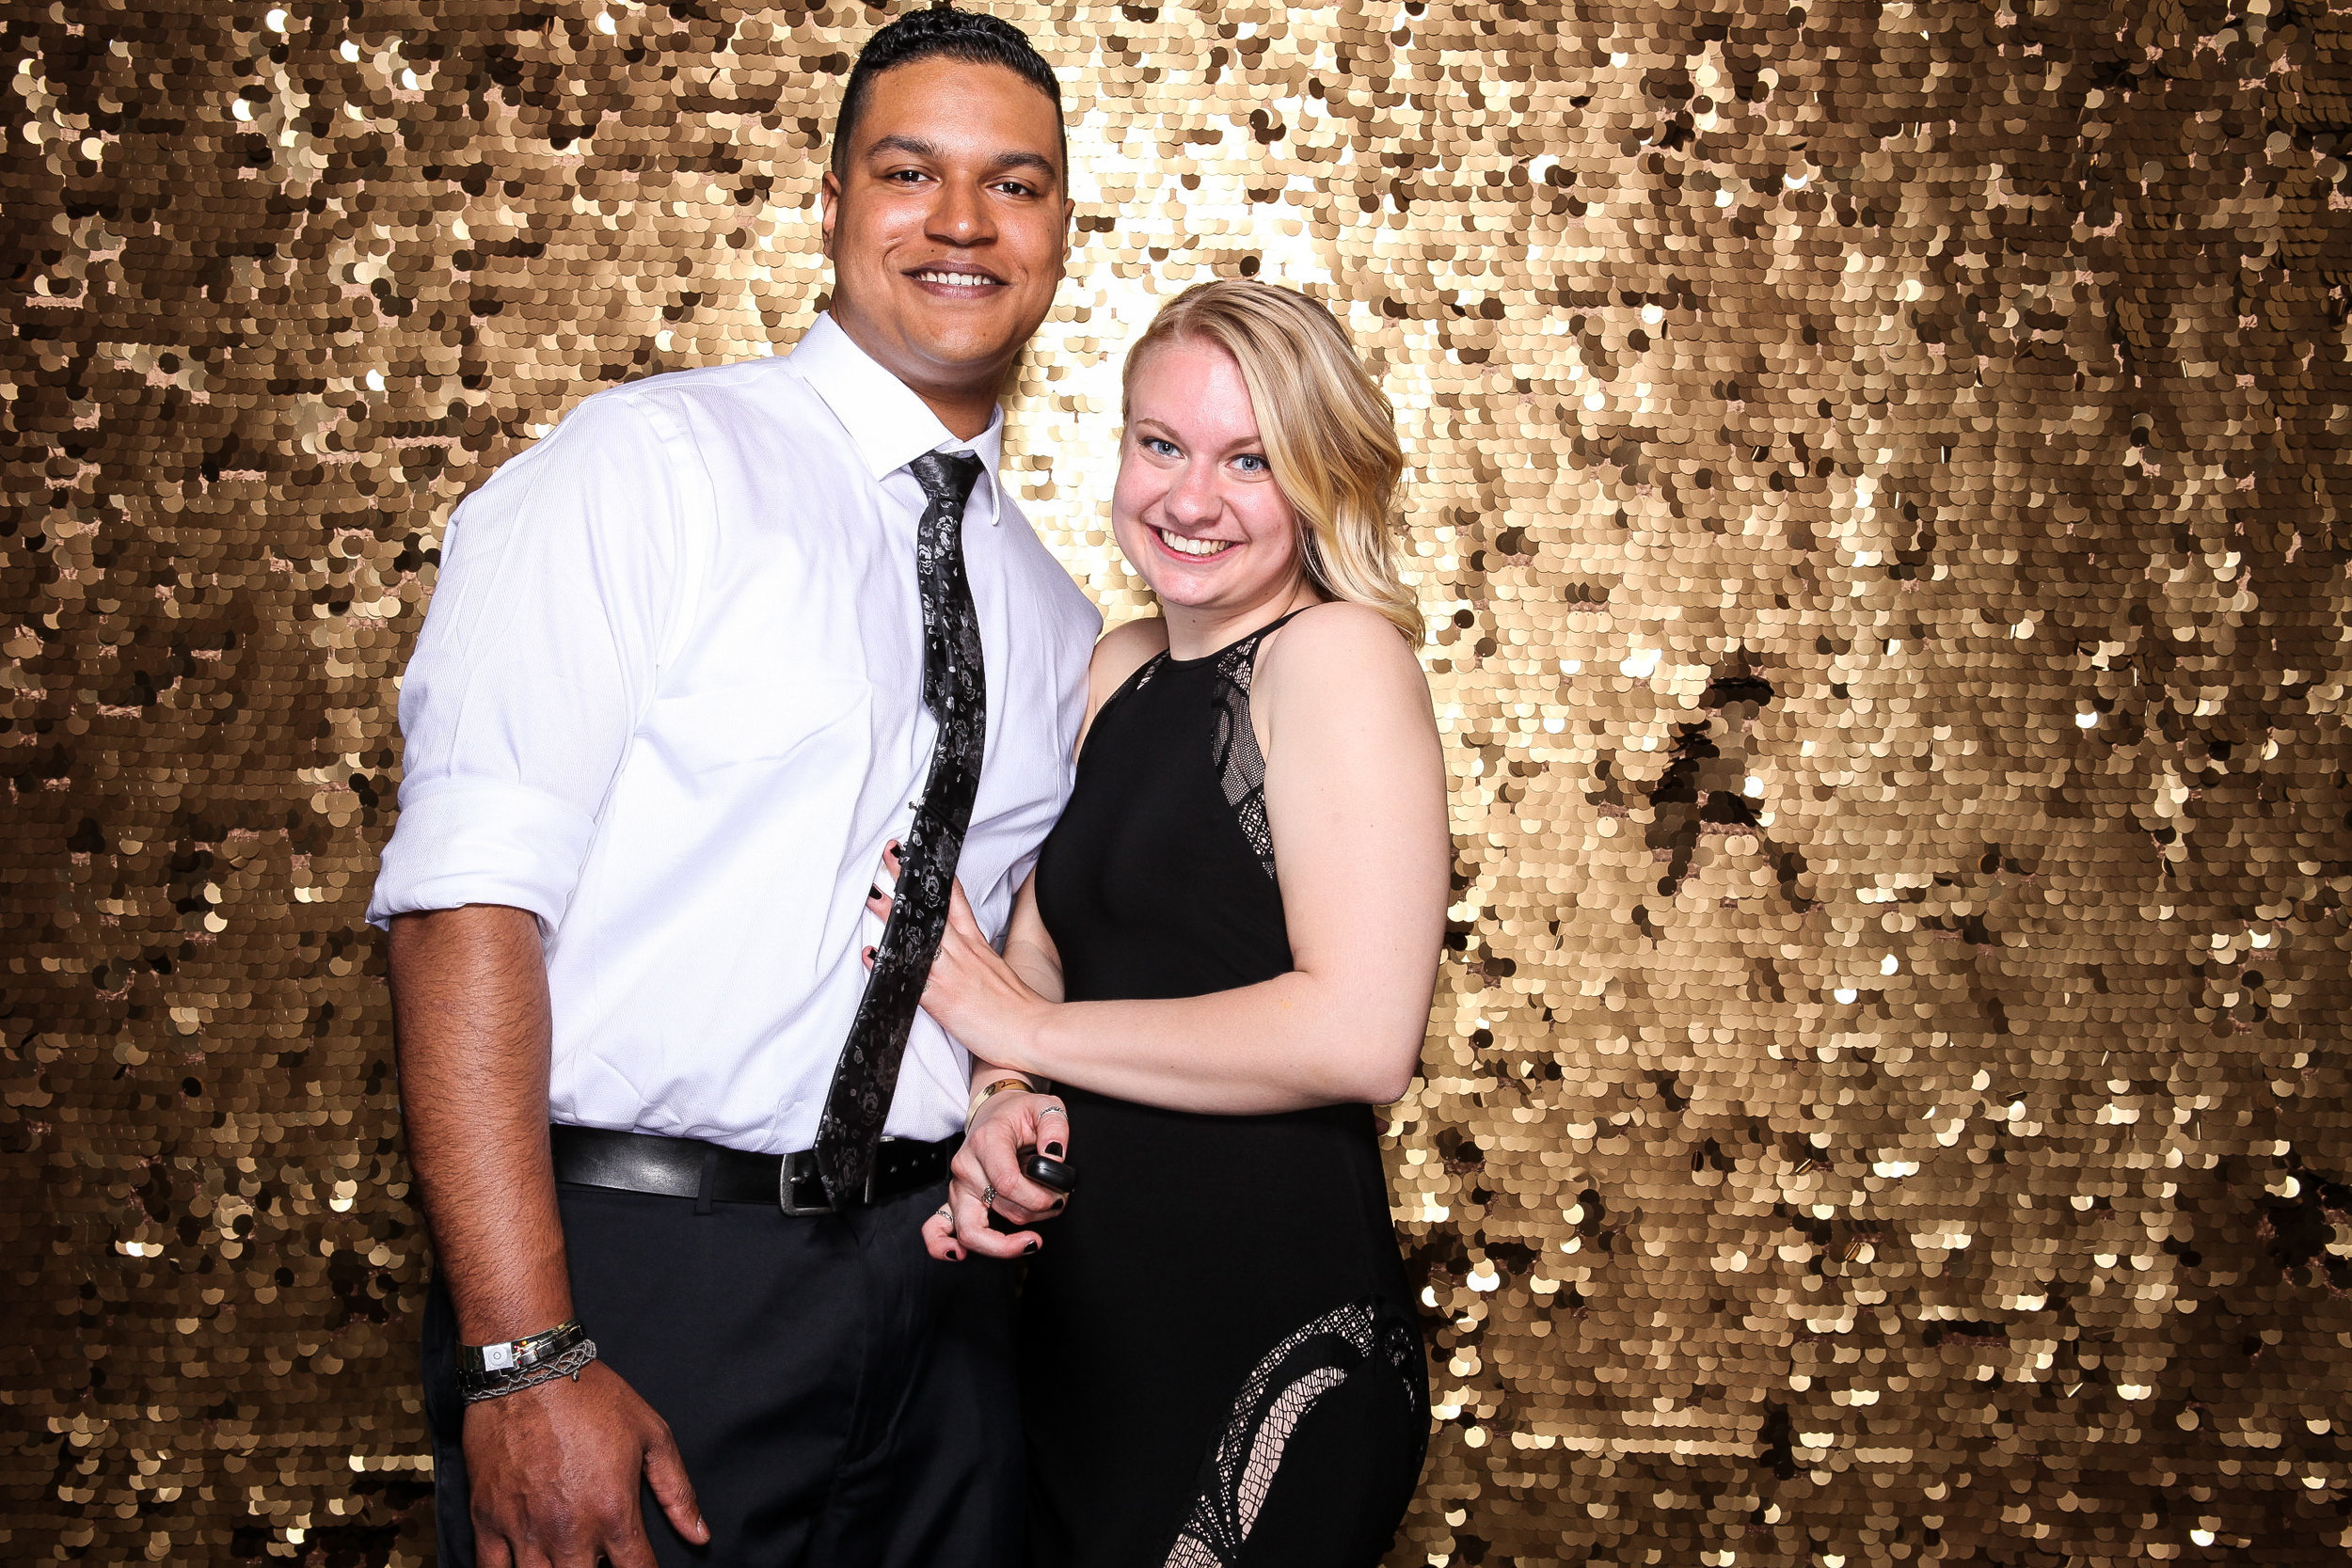 20190503_Adelphi_Senior_Formal-229.jpg